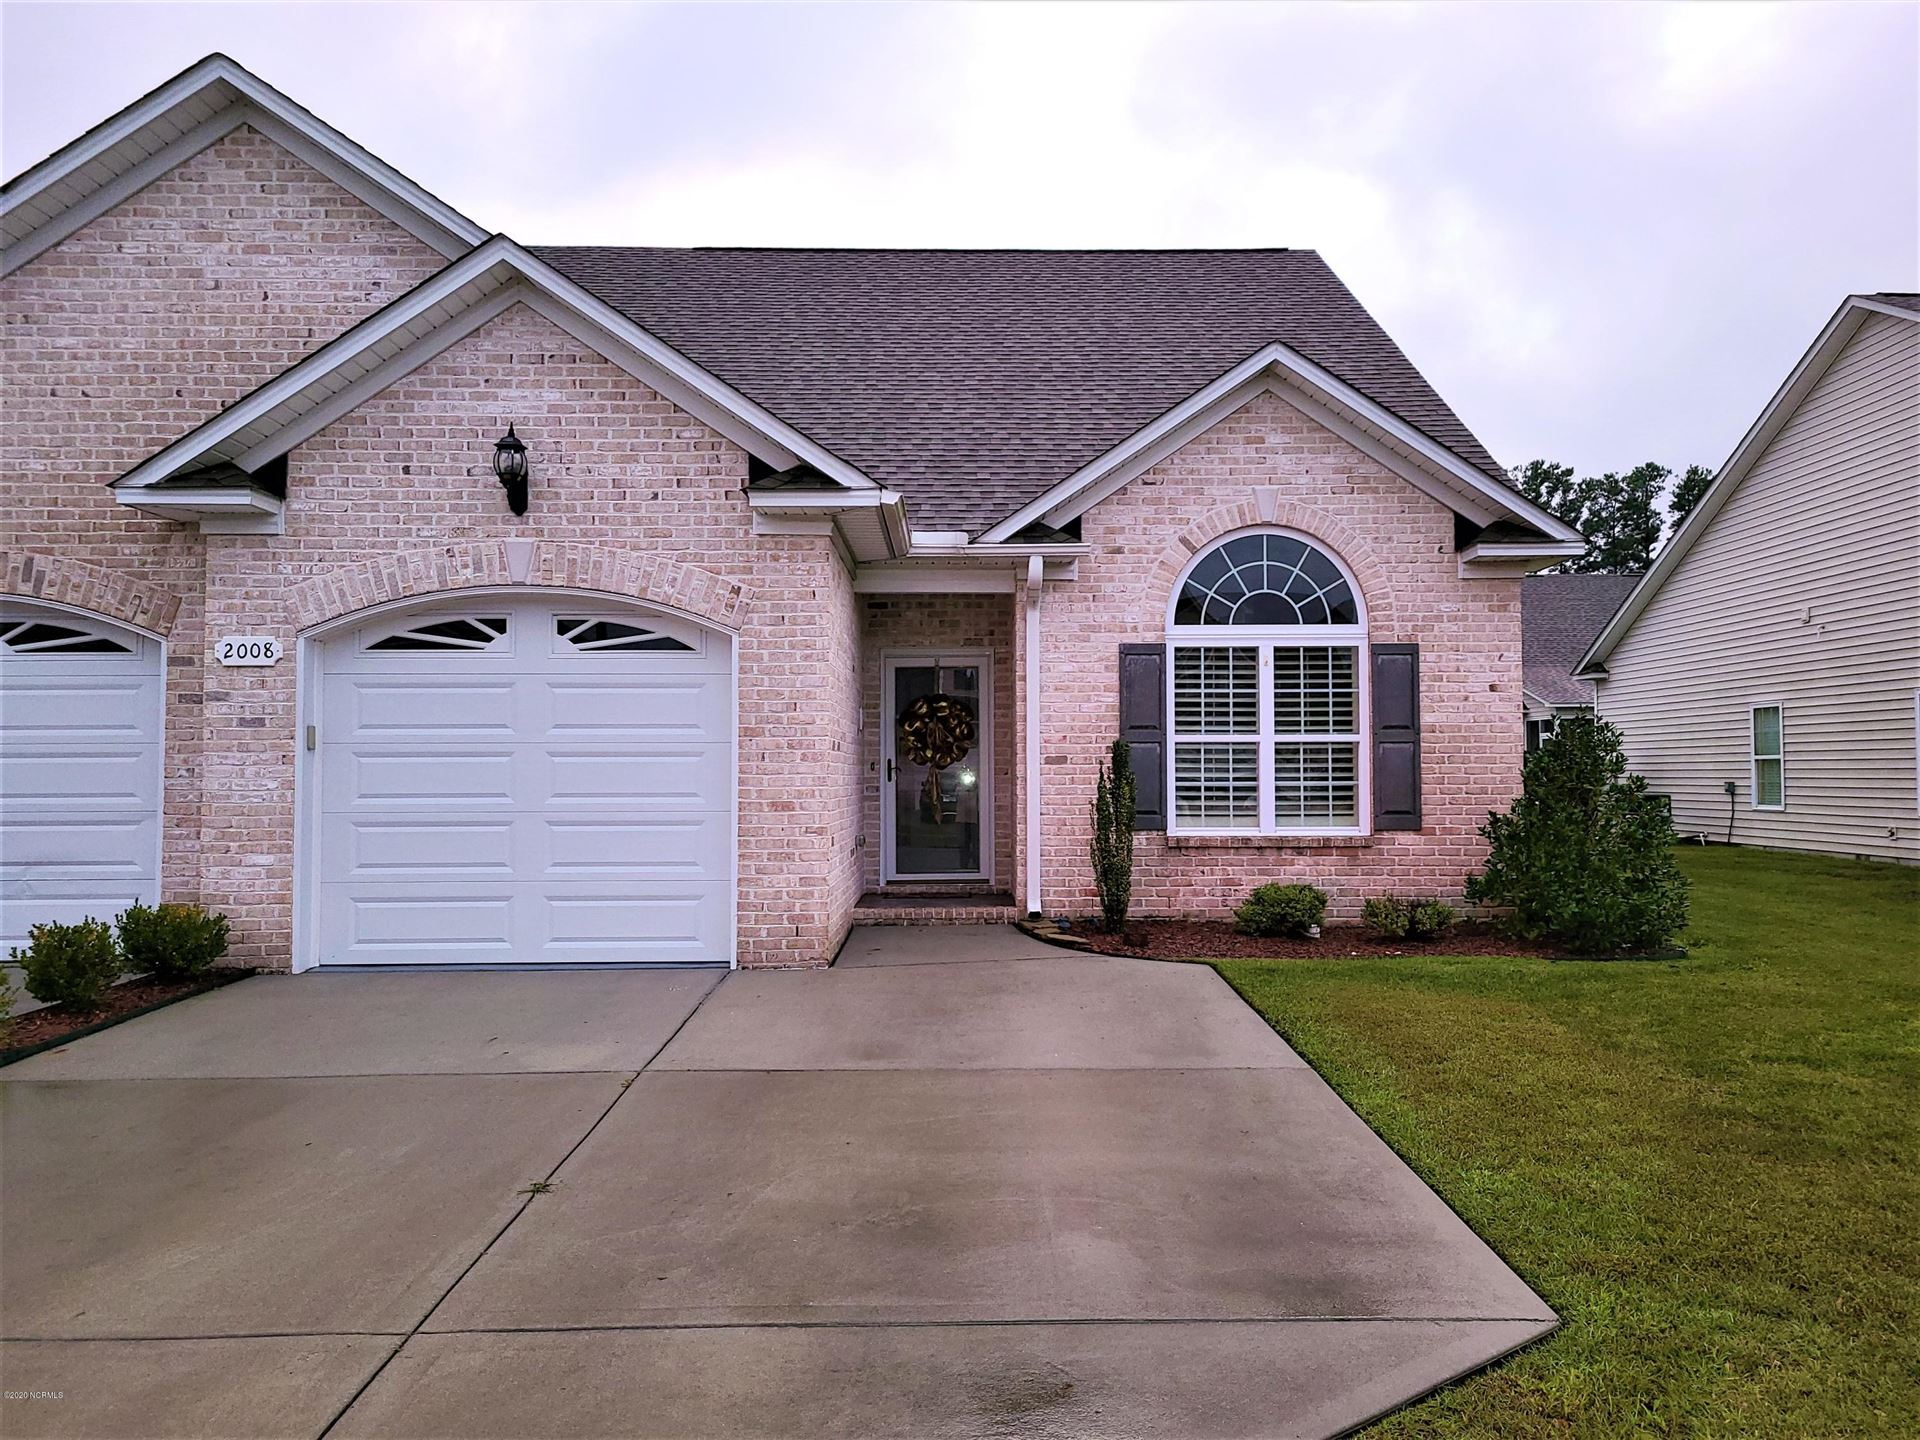 2008 Leighton Drive #B, Greenville, NC 27834 - MLS#: 100238428